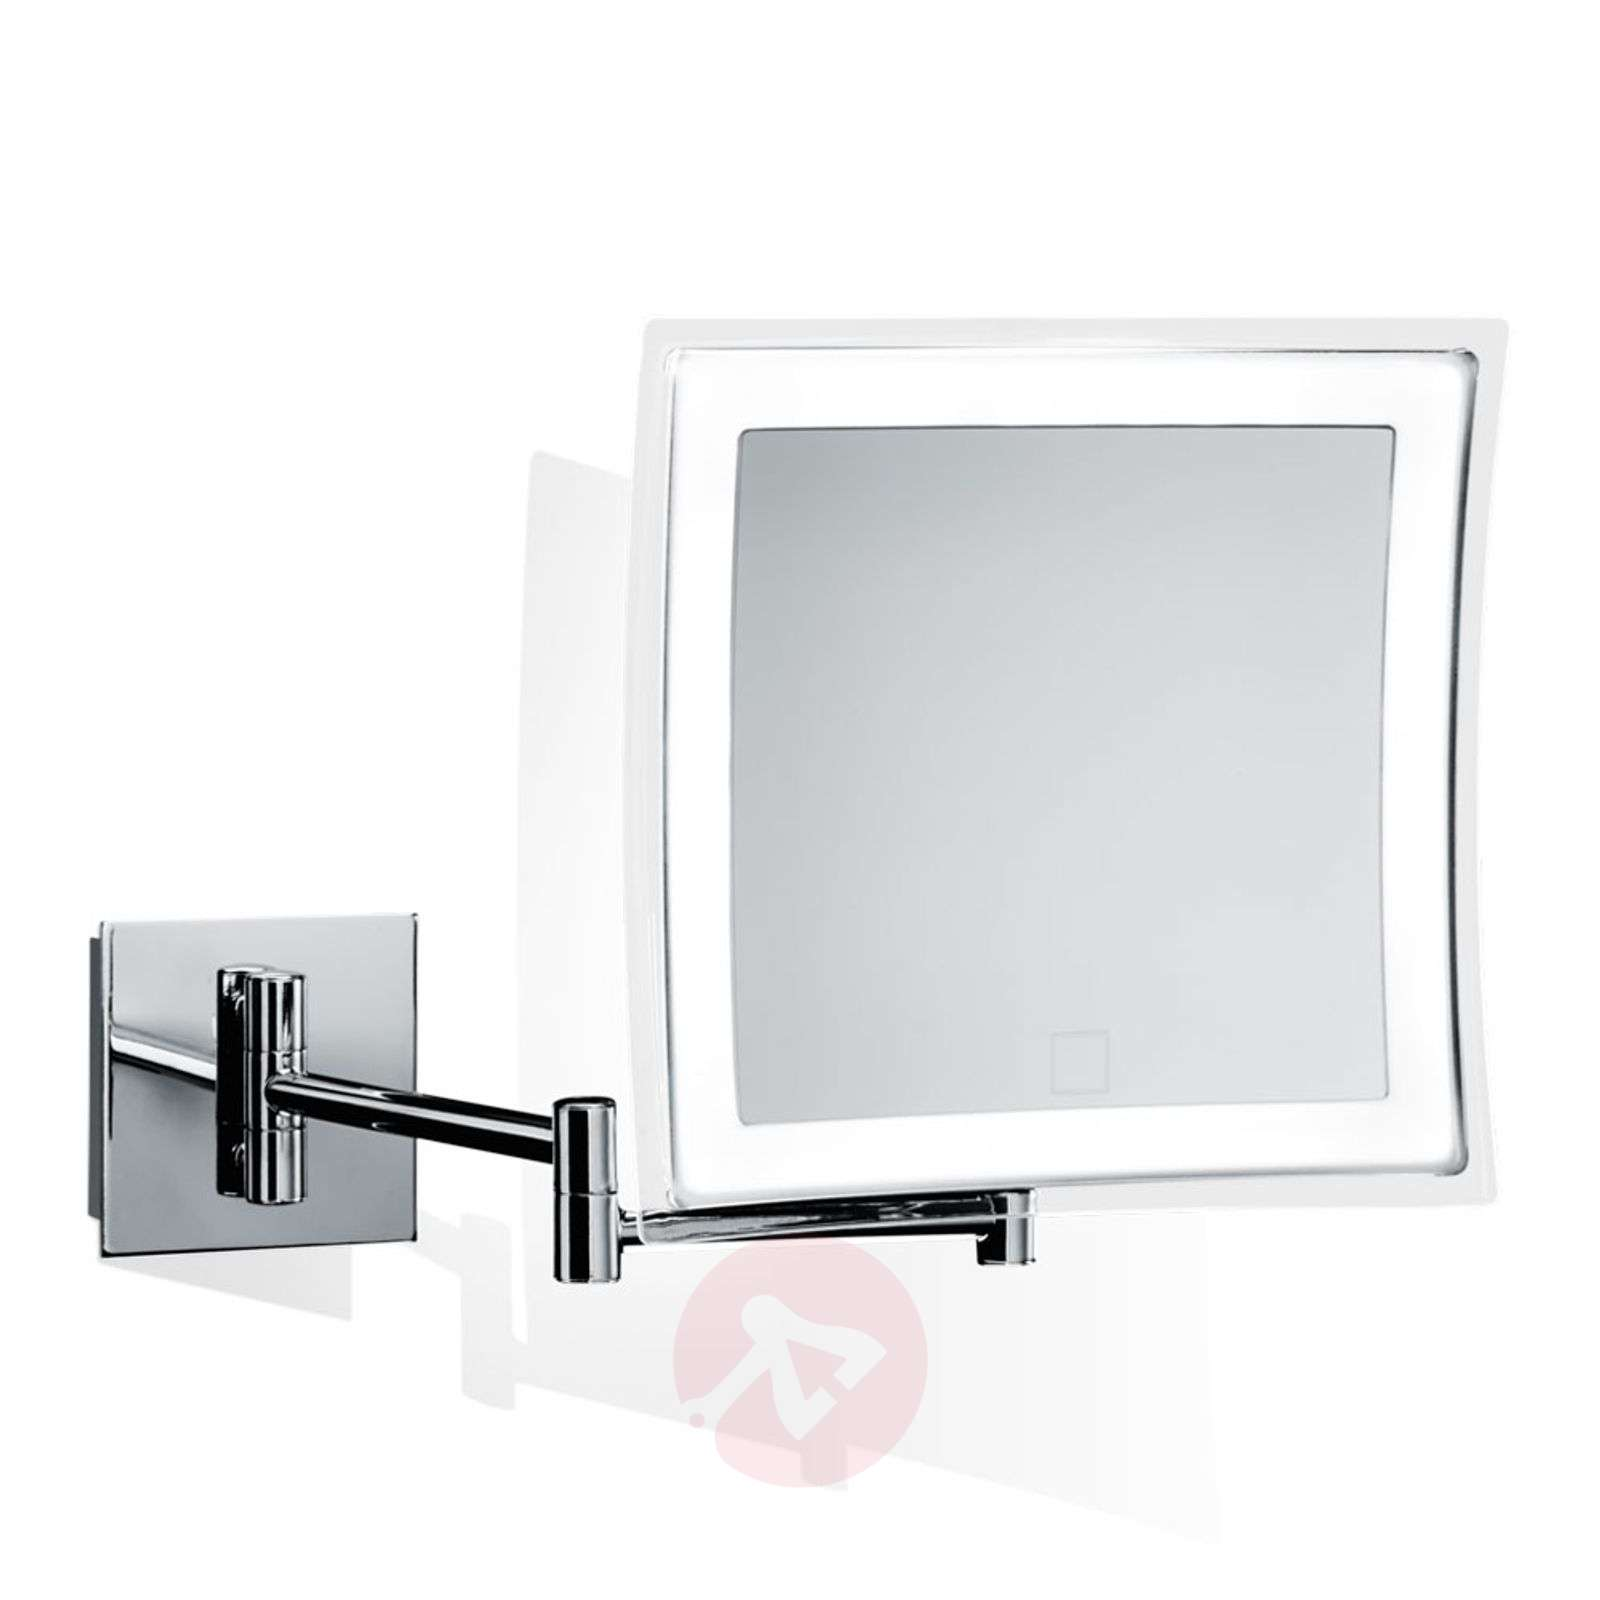 Decor Walther BS 84 Touch espejo pared LED táctil-2504972-01